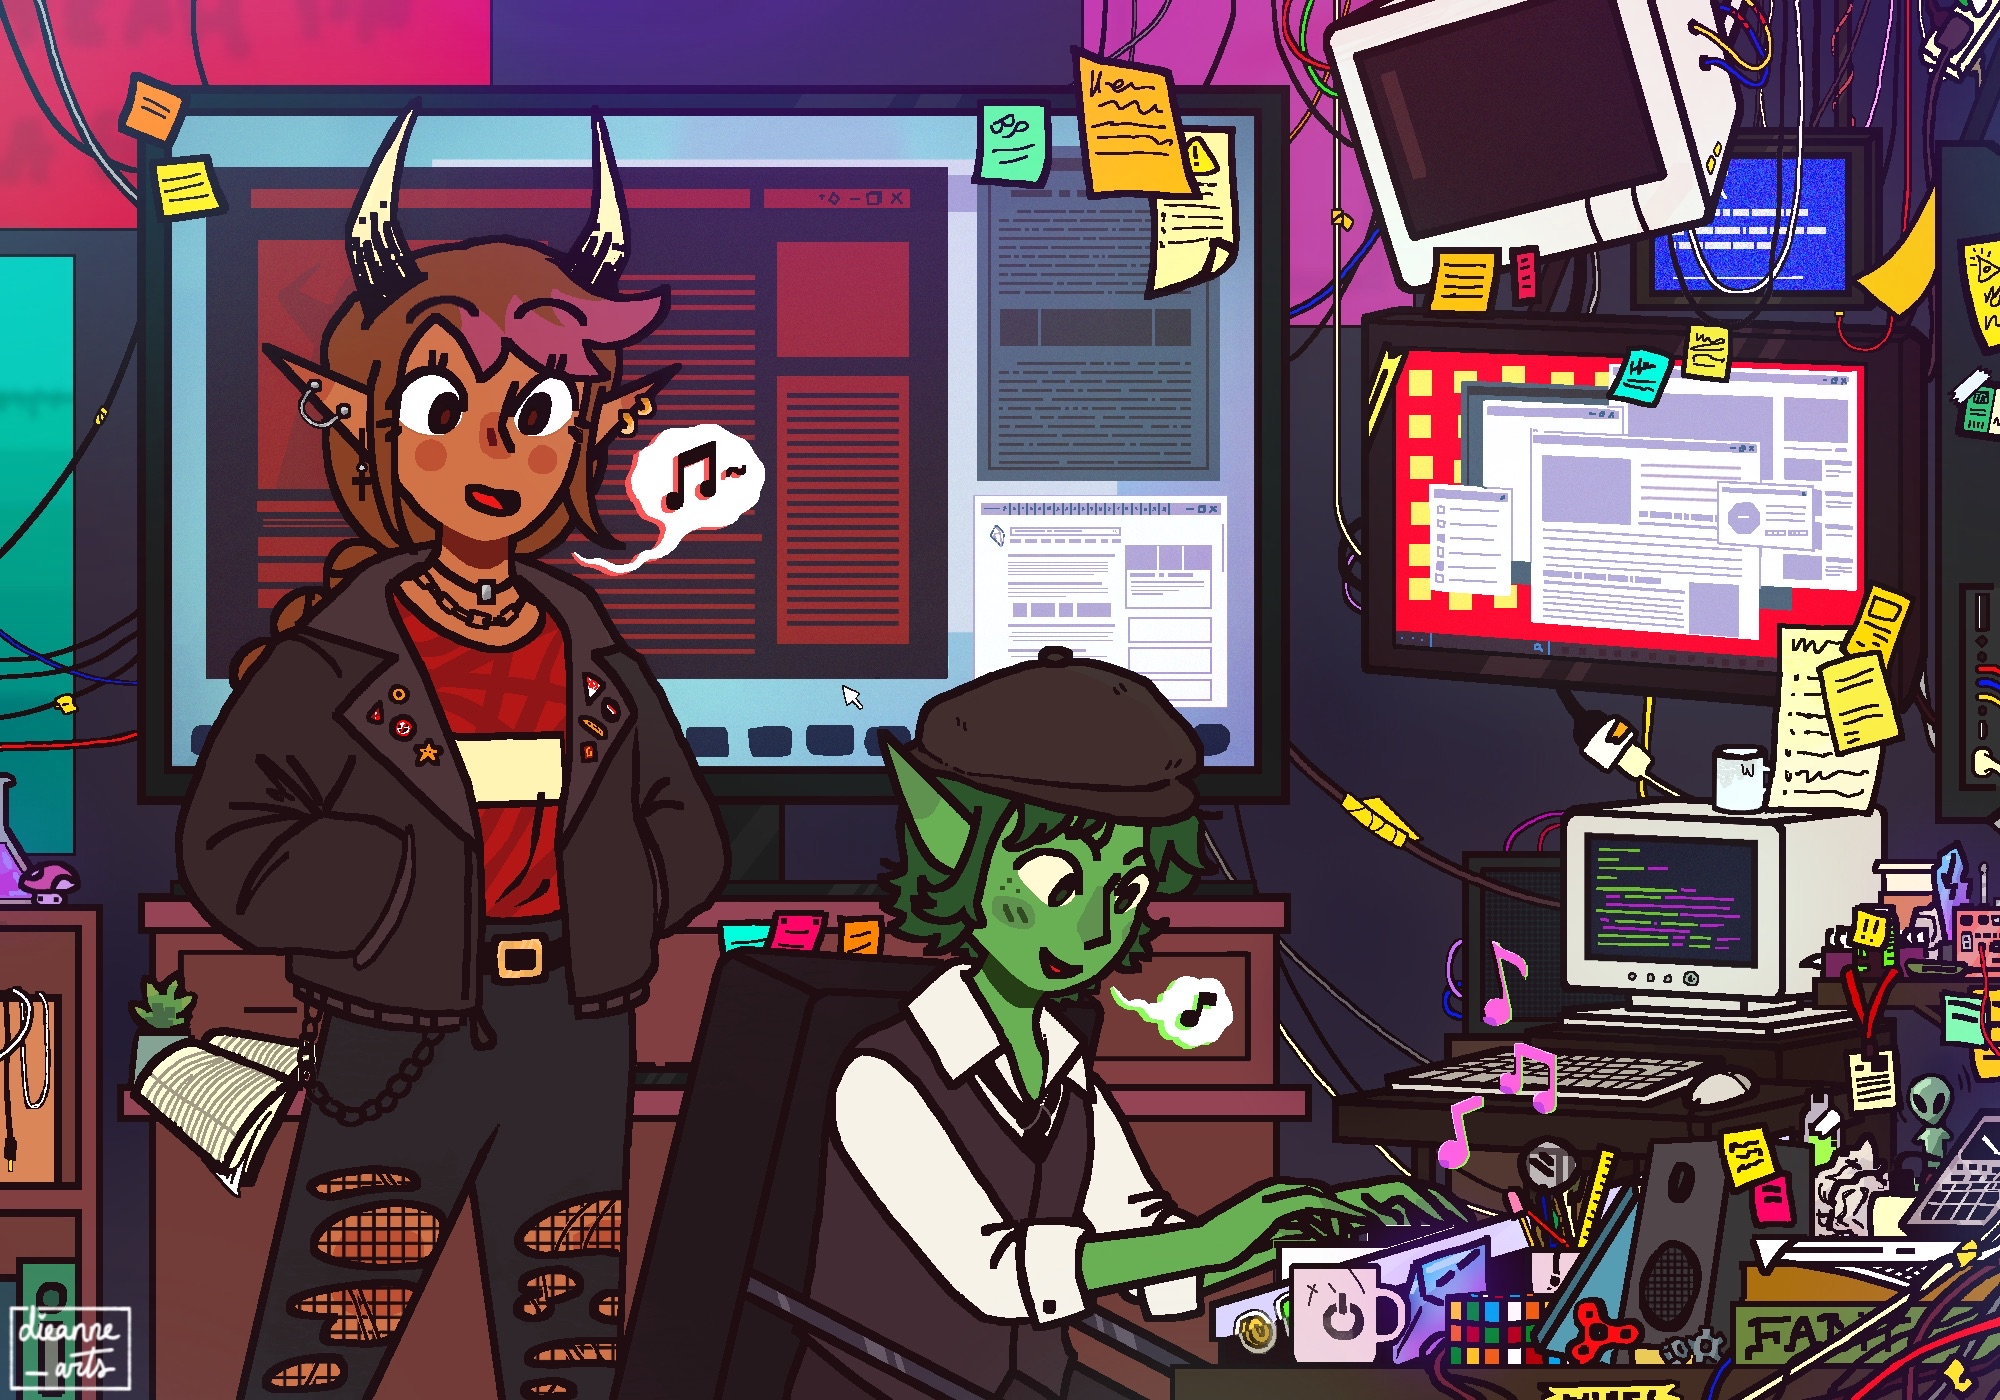 A drawing of Fig and Riz in the computer lab at school. The desk Riz sits at is cluttered with wires, paper, and fidget toys. He's playing a midi keyboard. Fig is shown with her hands in her pockets, singing.